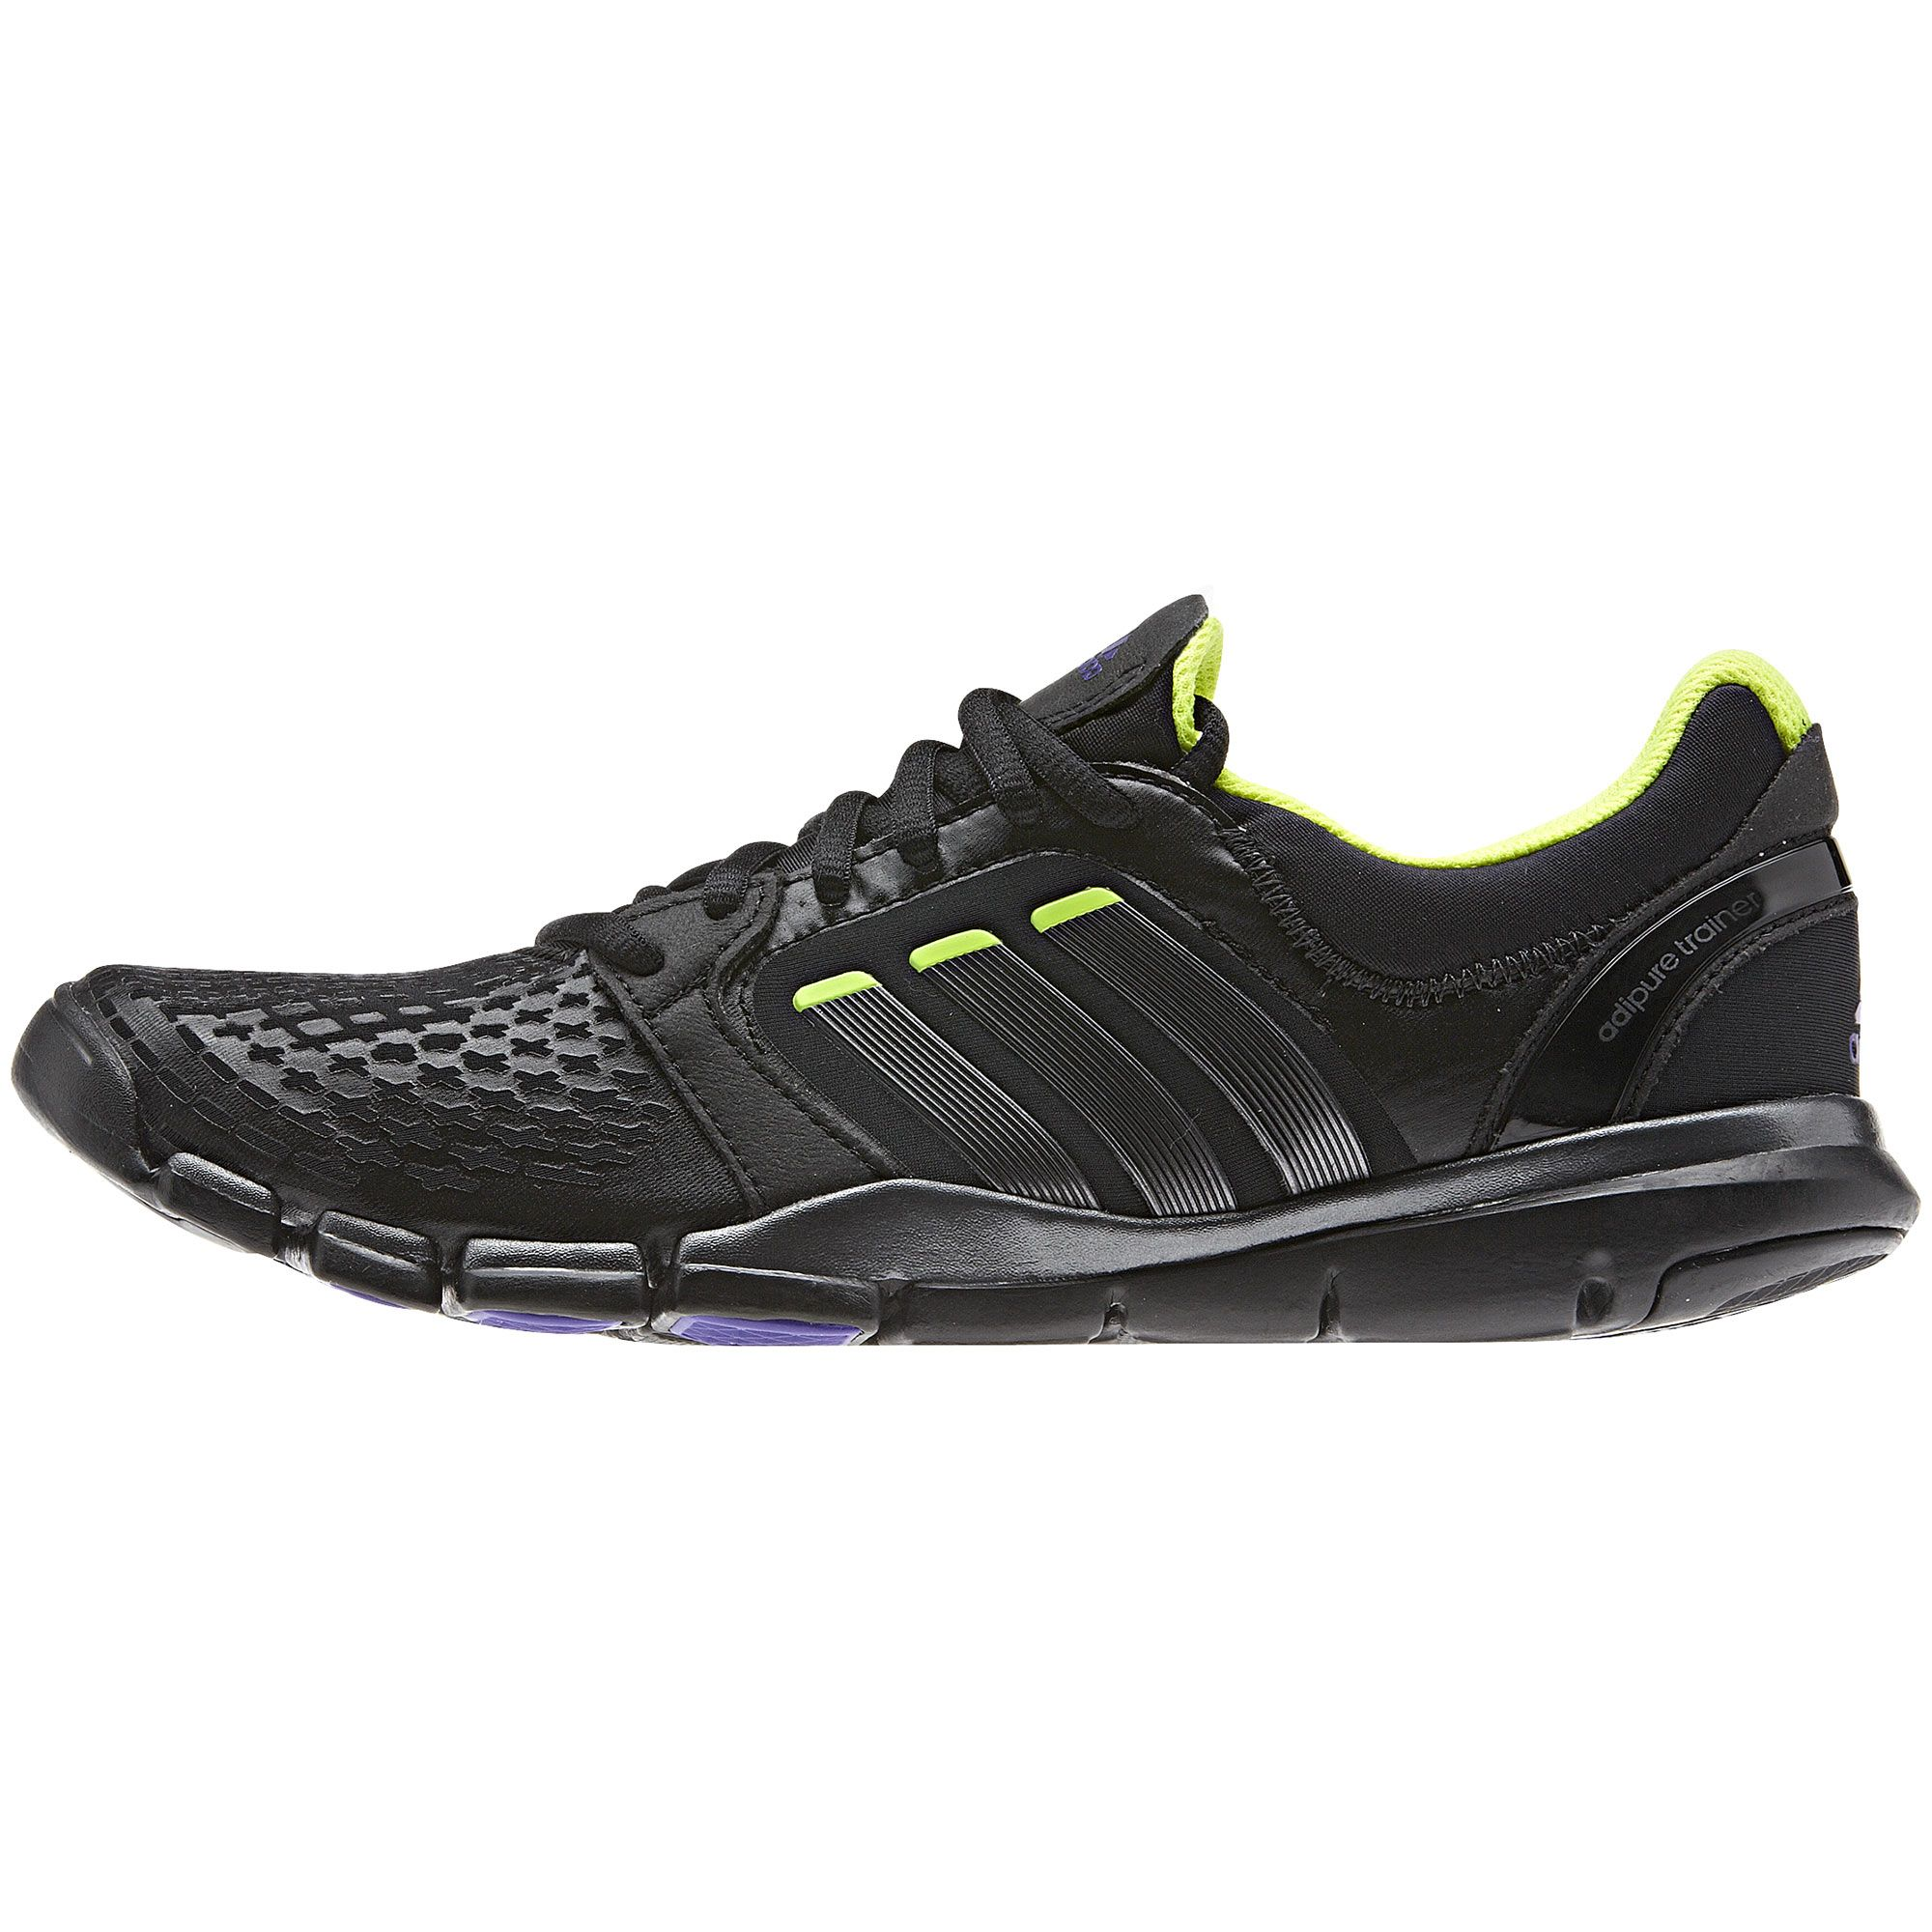 reputable site 0004a e076b Adipure Trainer 360 Shoes Donna adidas  adidas Italia